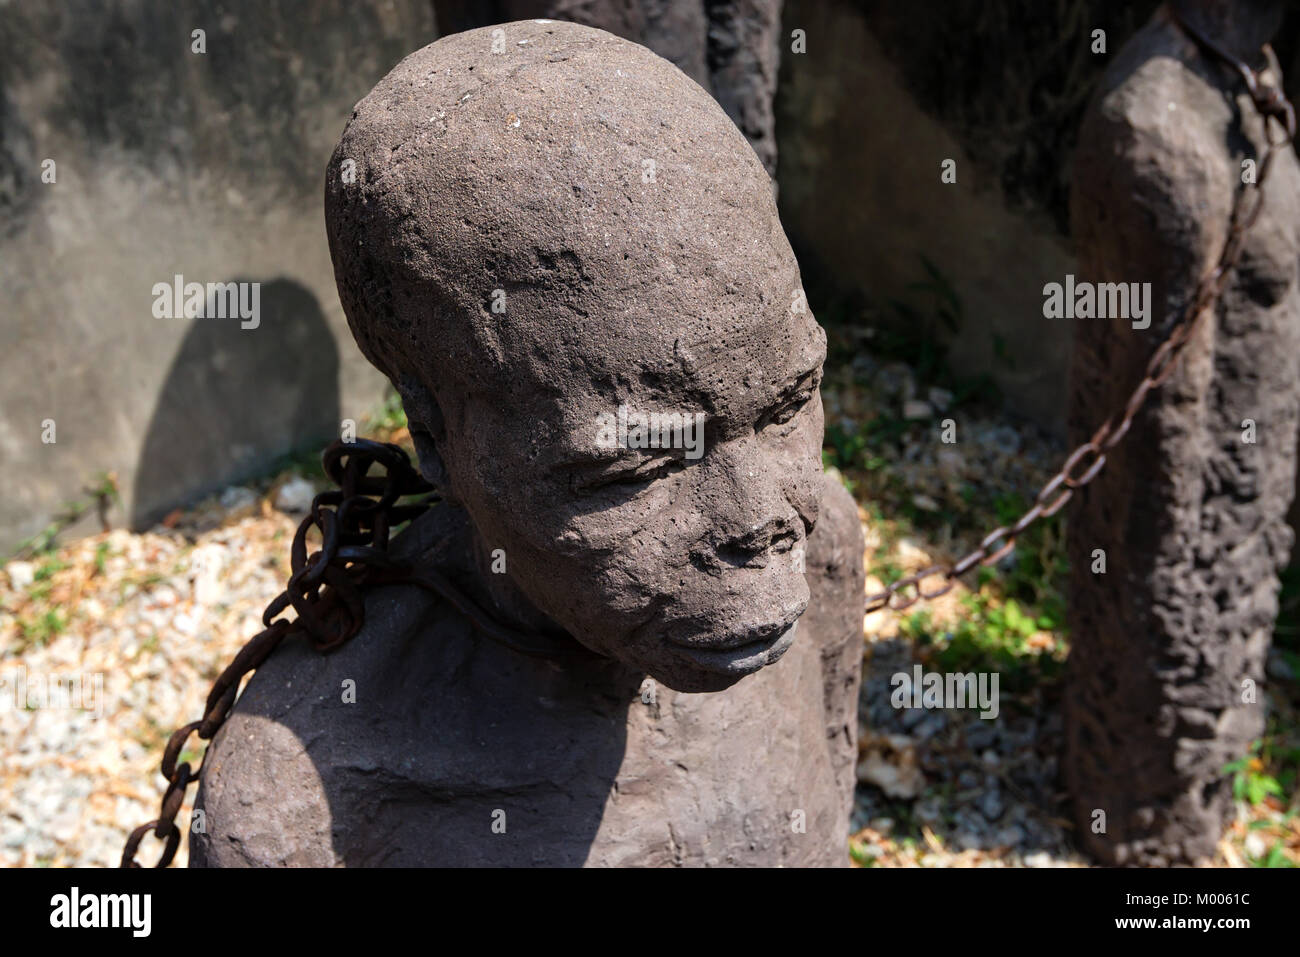 Monument of slaves dedicated to victims of slavery - Stock Image